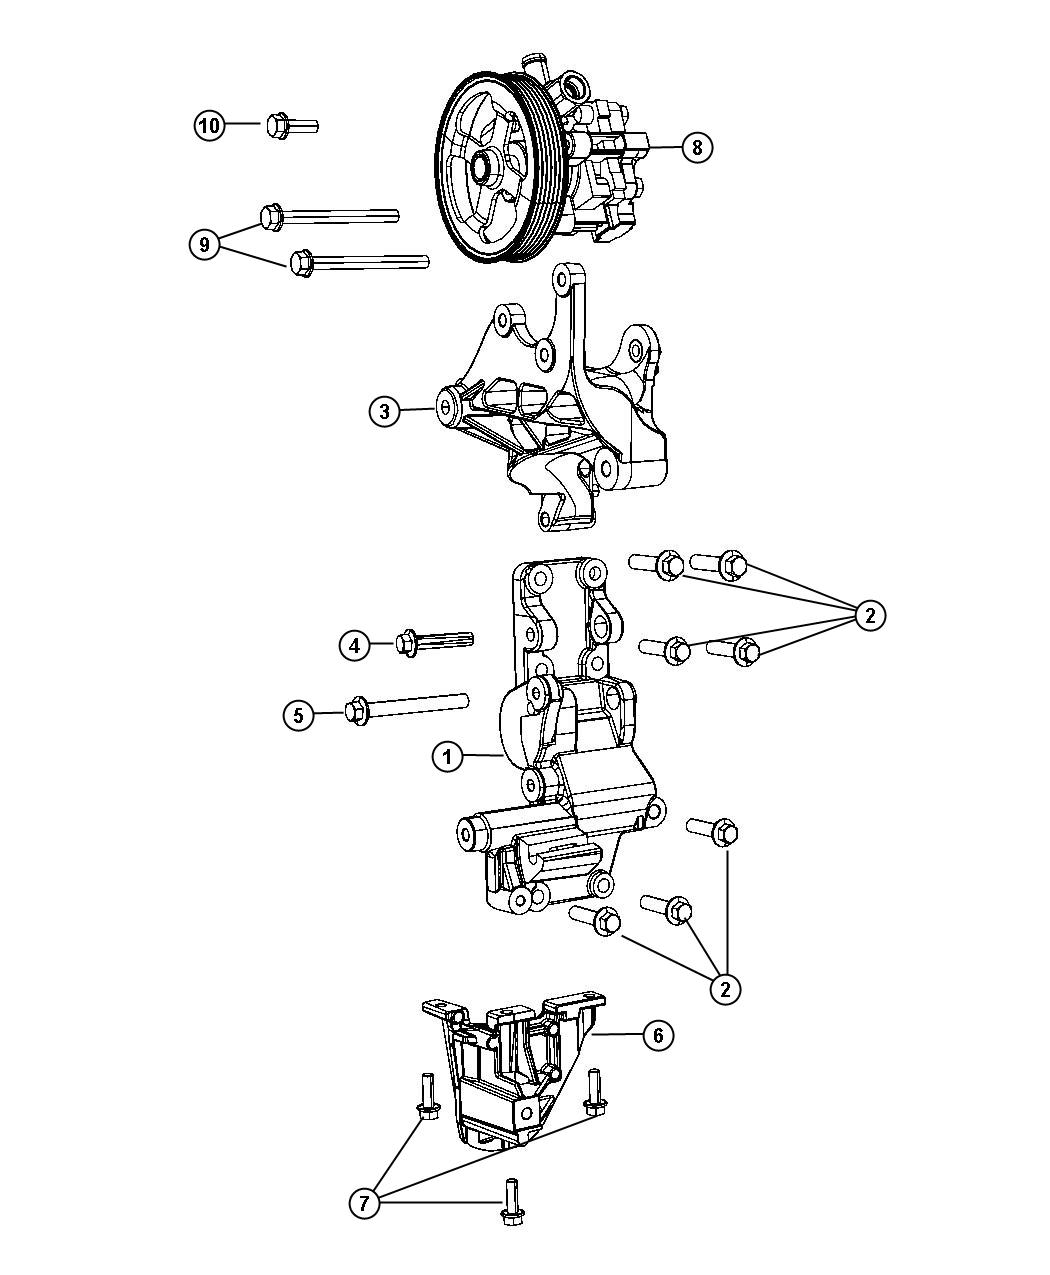 5 speed manual t355 transmission parts